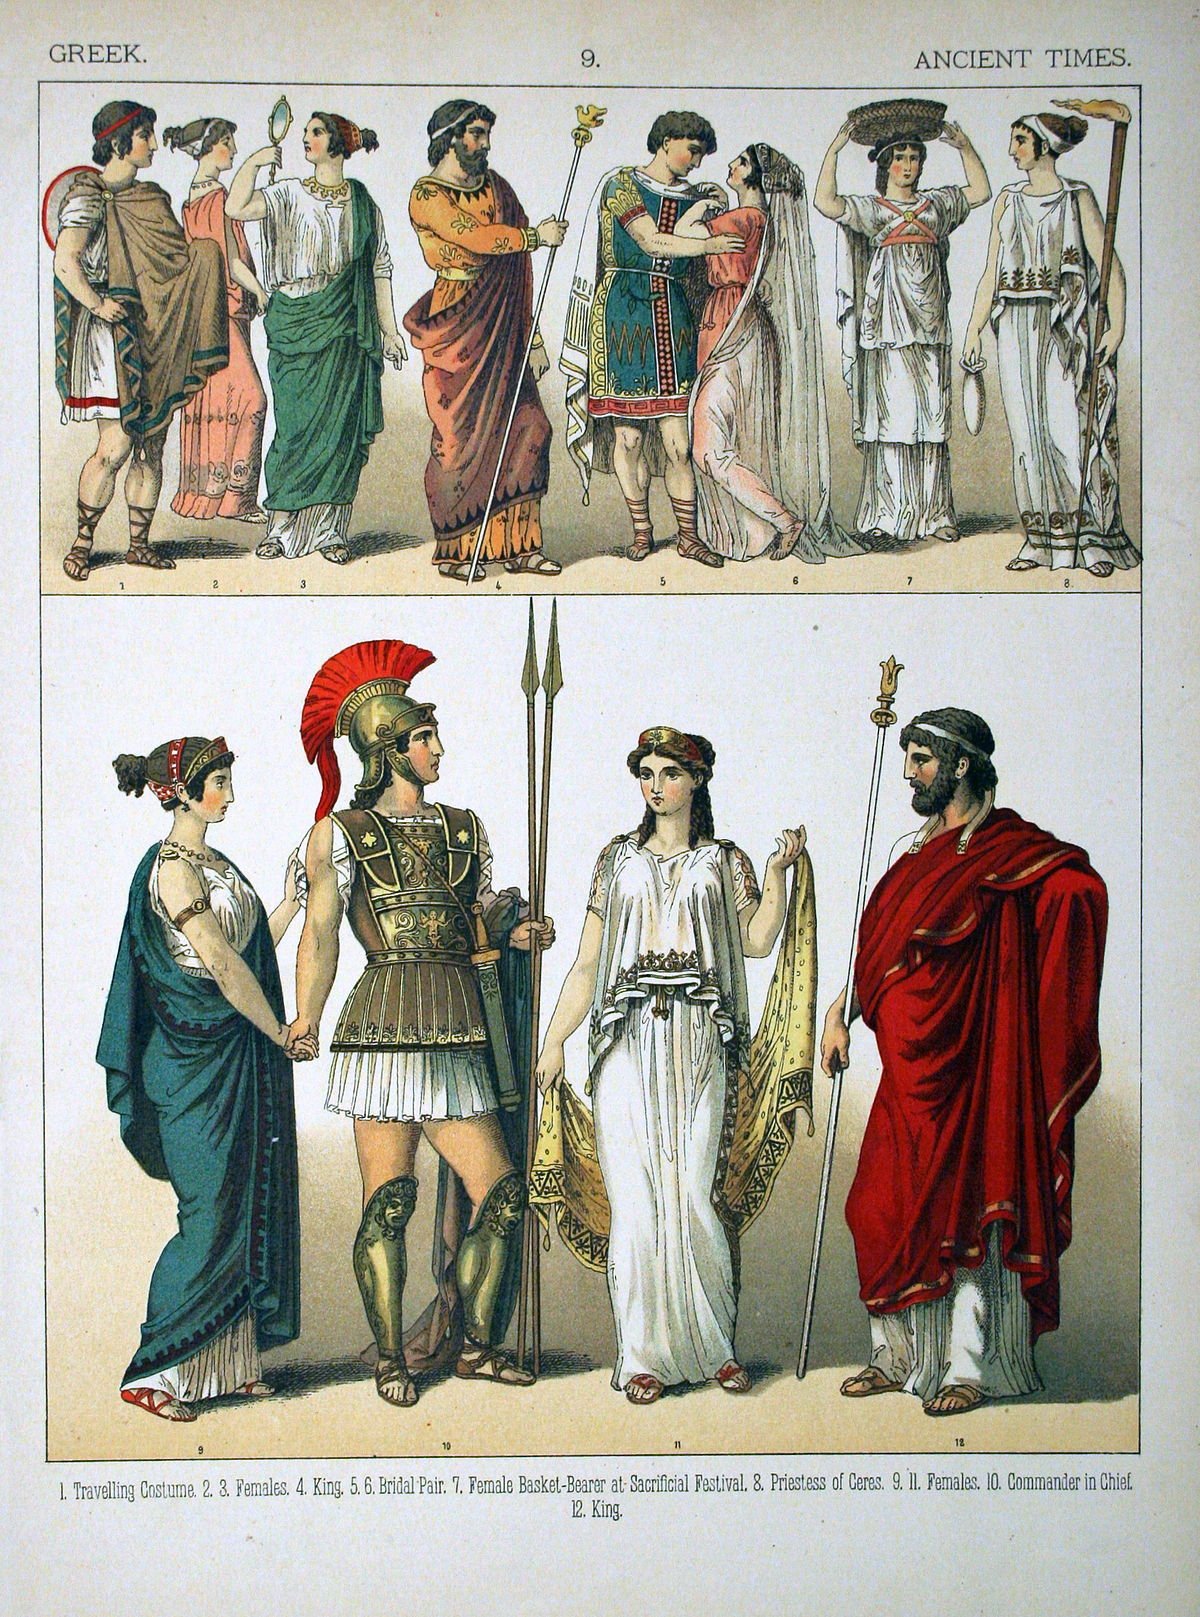 History of greek fashion